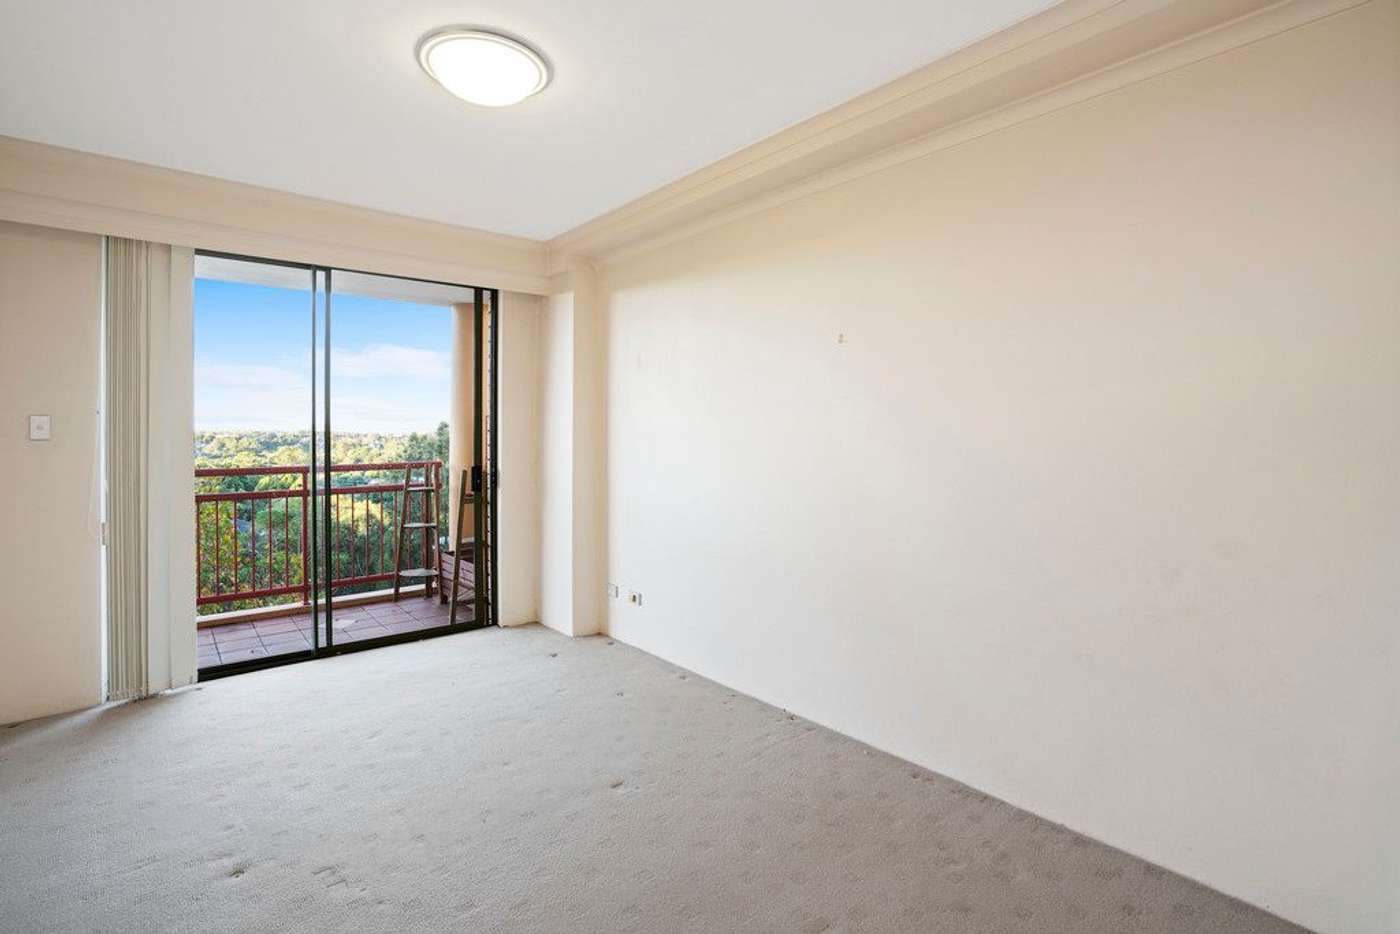 Sixth view of Homely apartment listing, 127/15 Herbert Street, St Leonards NSW 2065